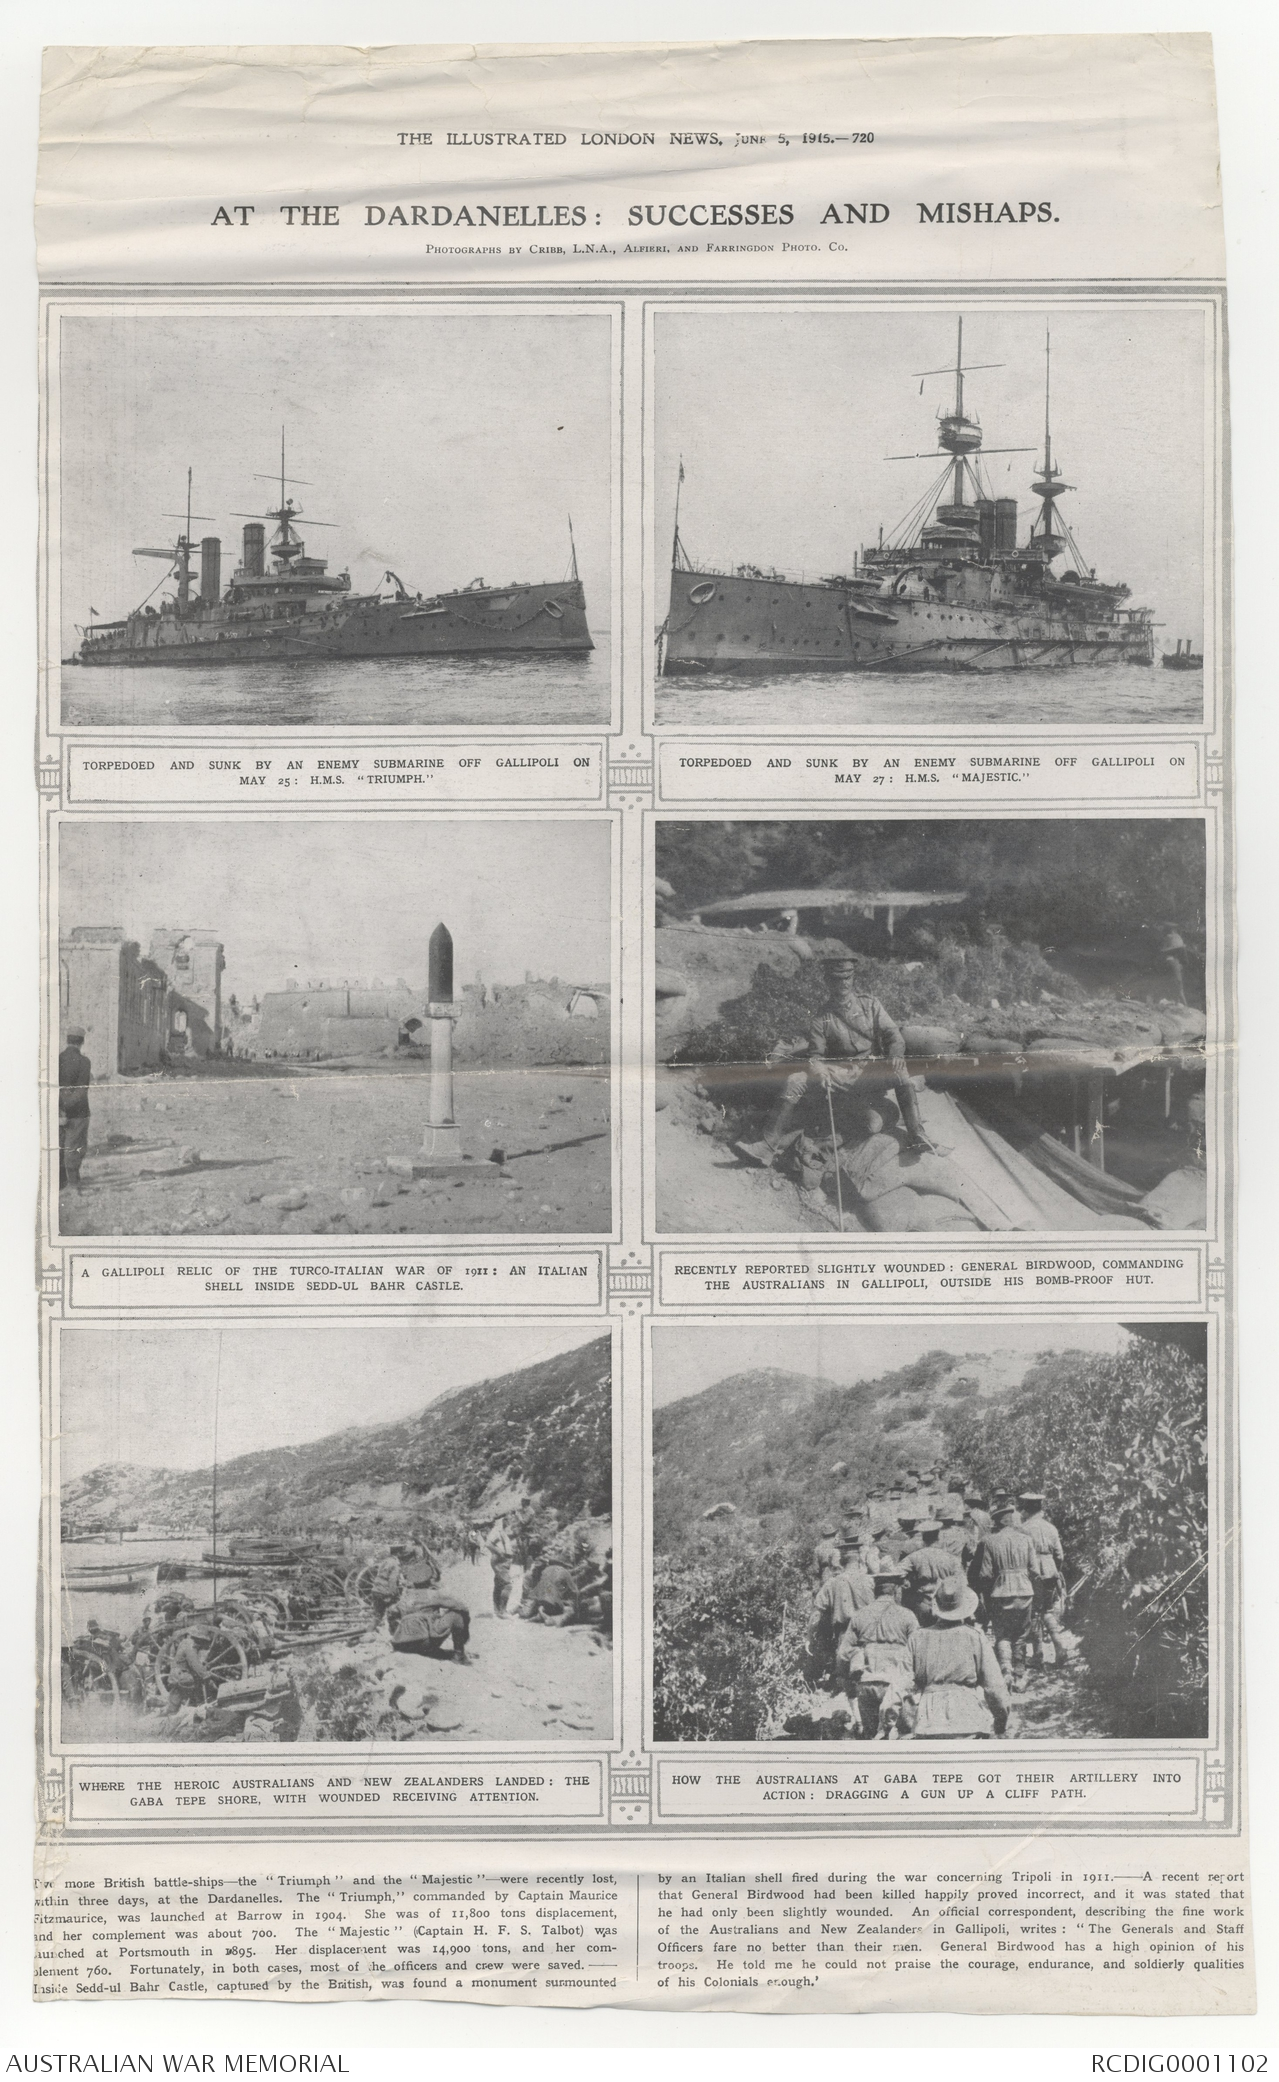 Newspaper clippings and written ephemera from 1915 – 1920